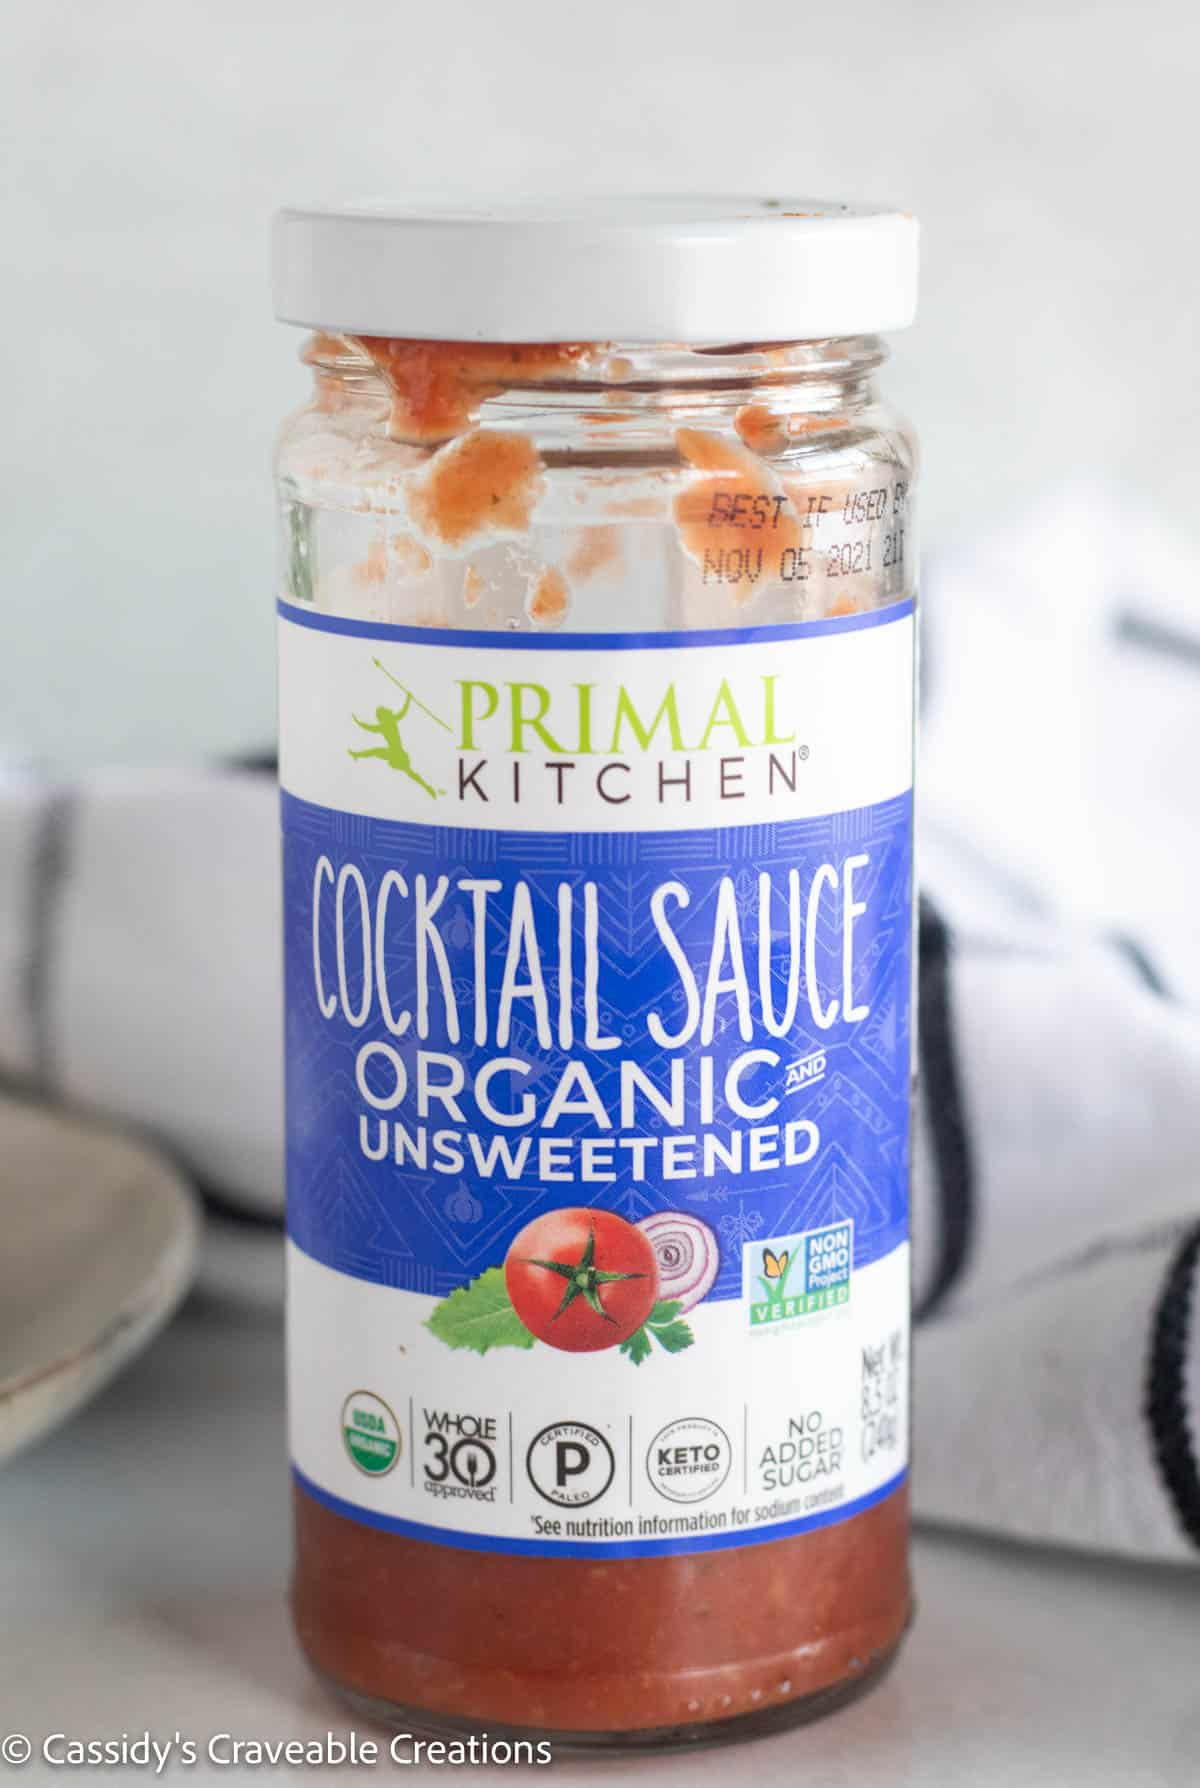 bottle of primal kitchen cocktail sauce